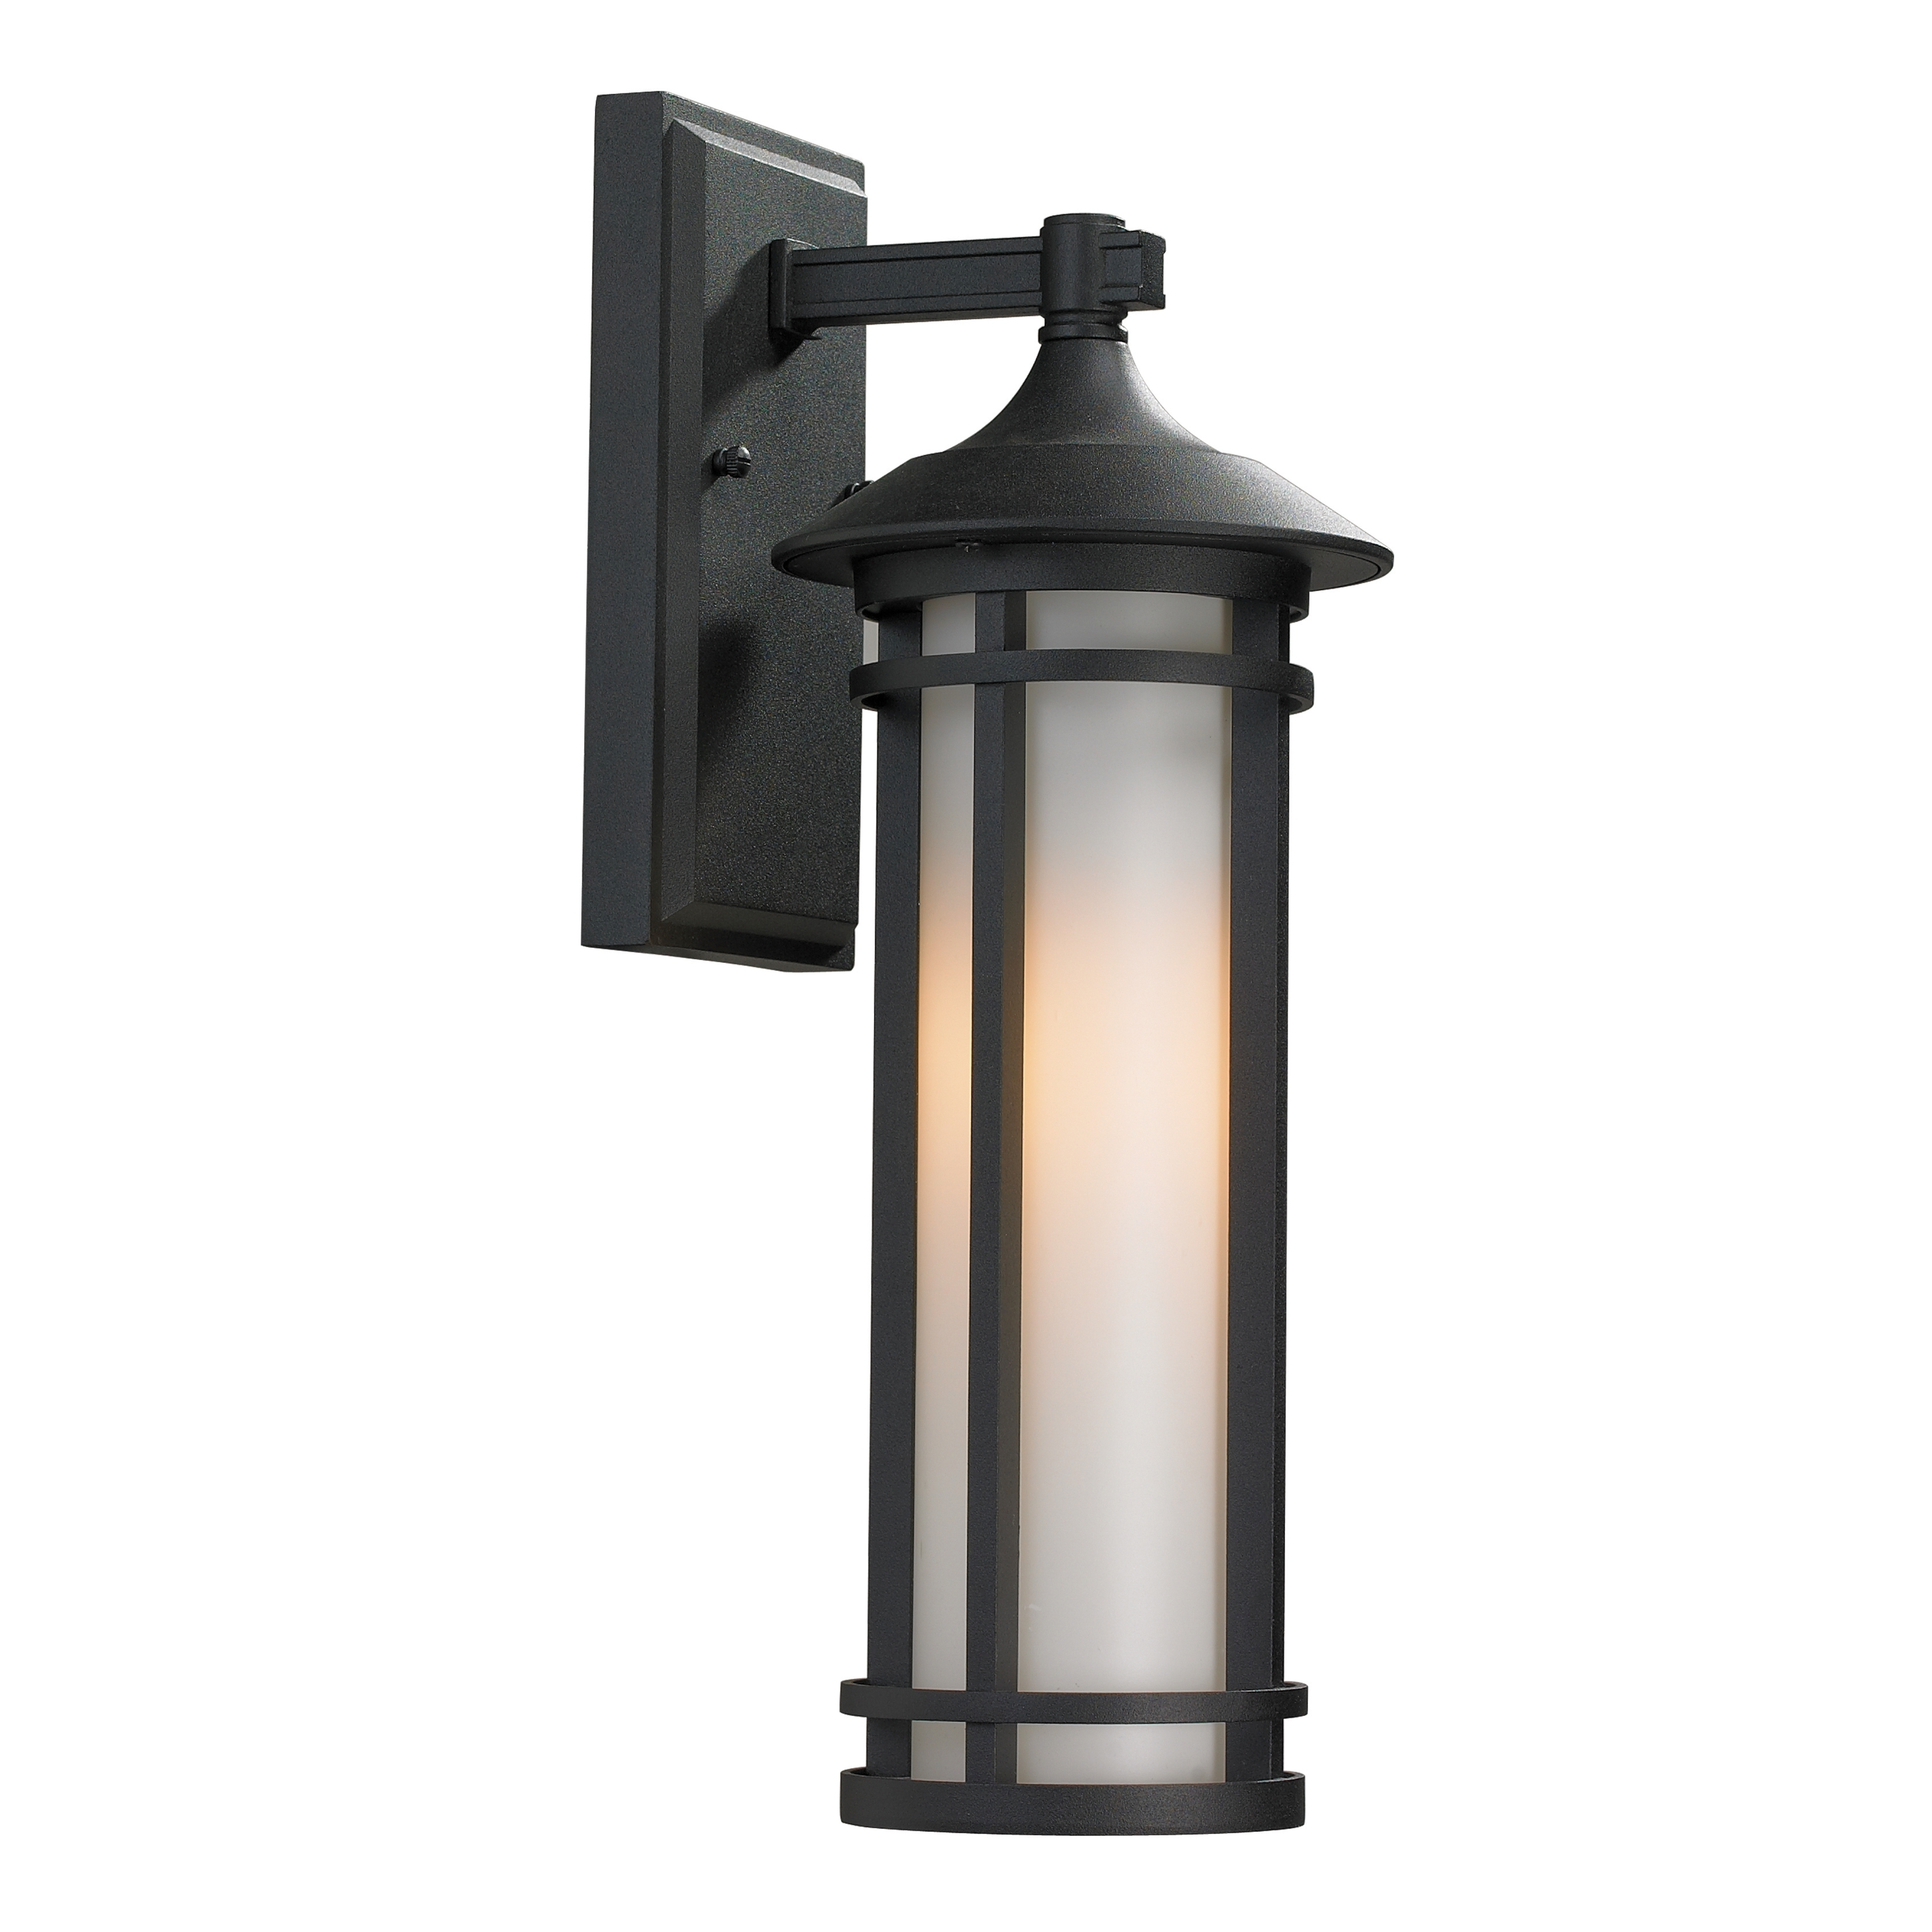 Outdoor : Modern Outdoor Landscape Lighting Exterior Wall Sconce In Latest Modern Outdoor Pendant Cylinder Lighting Fixtures (View 18 of 20)